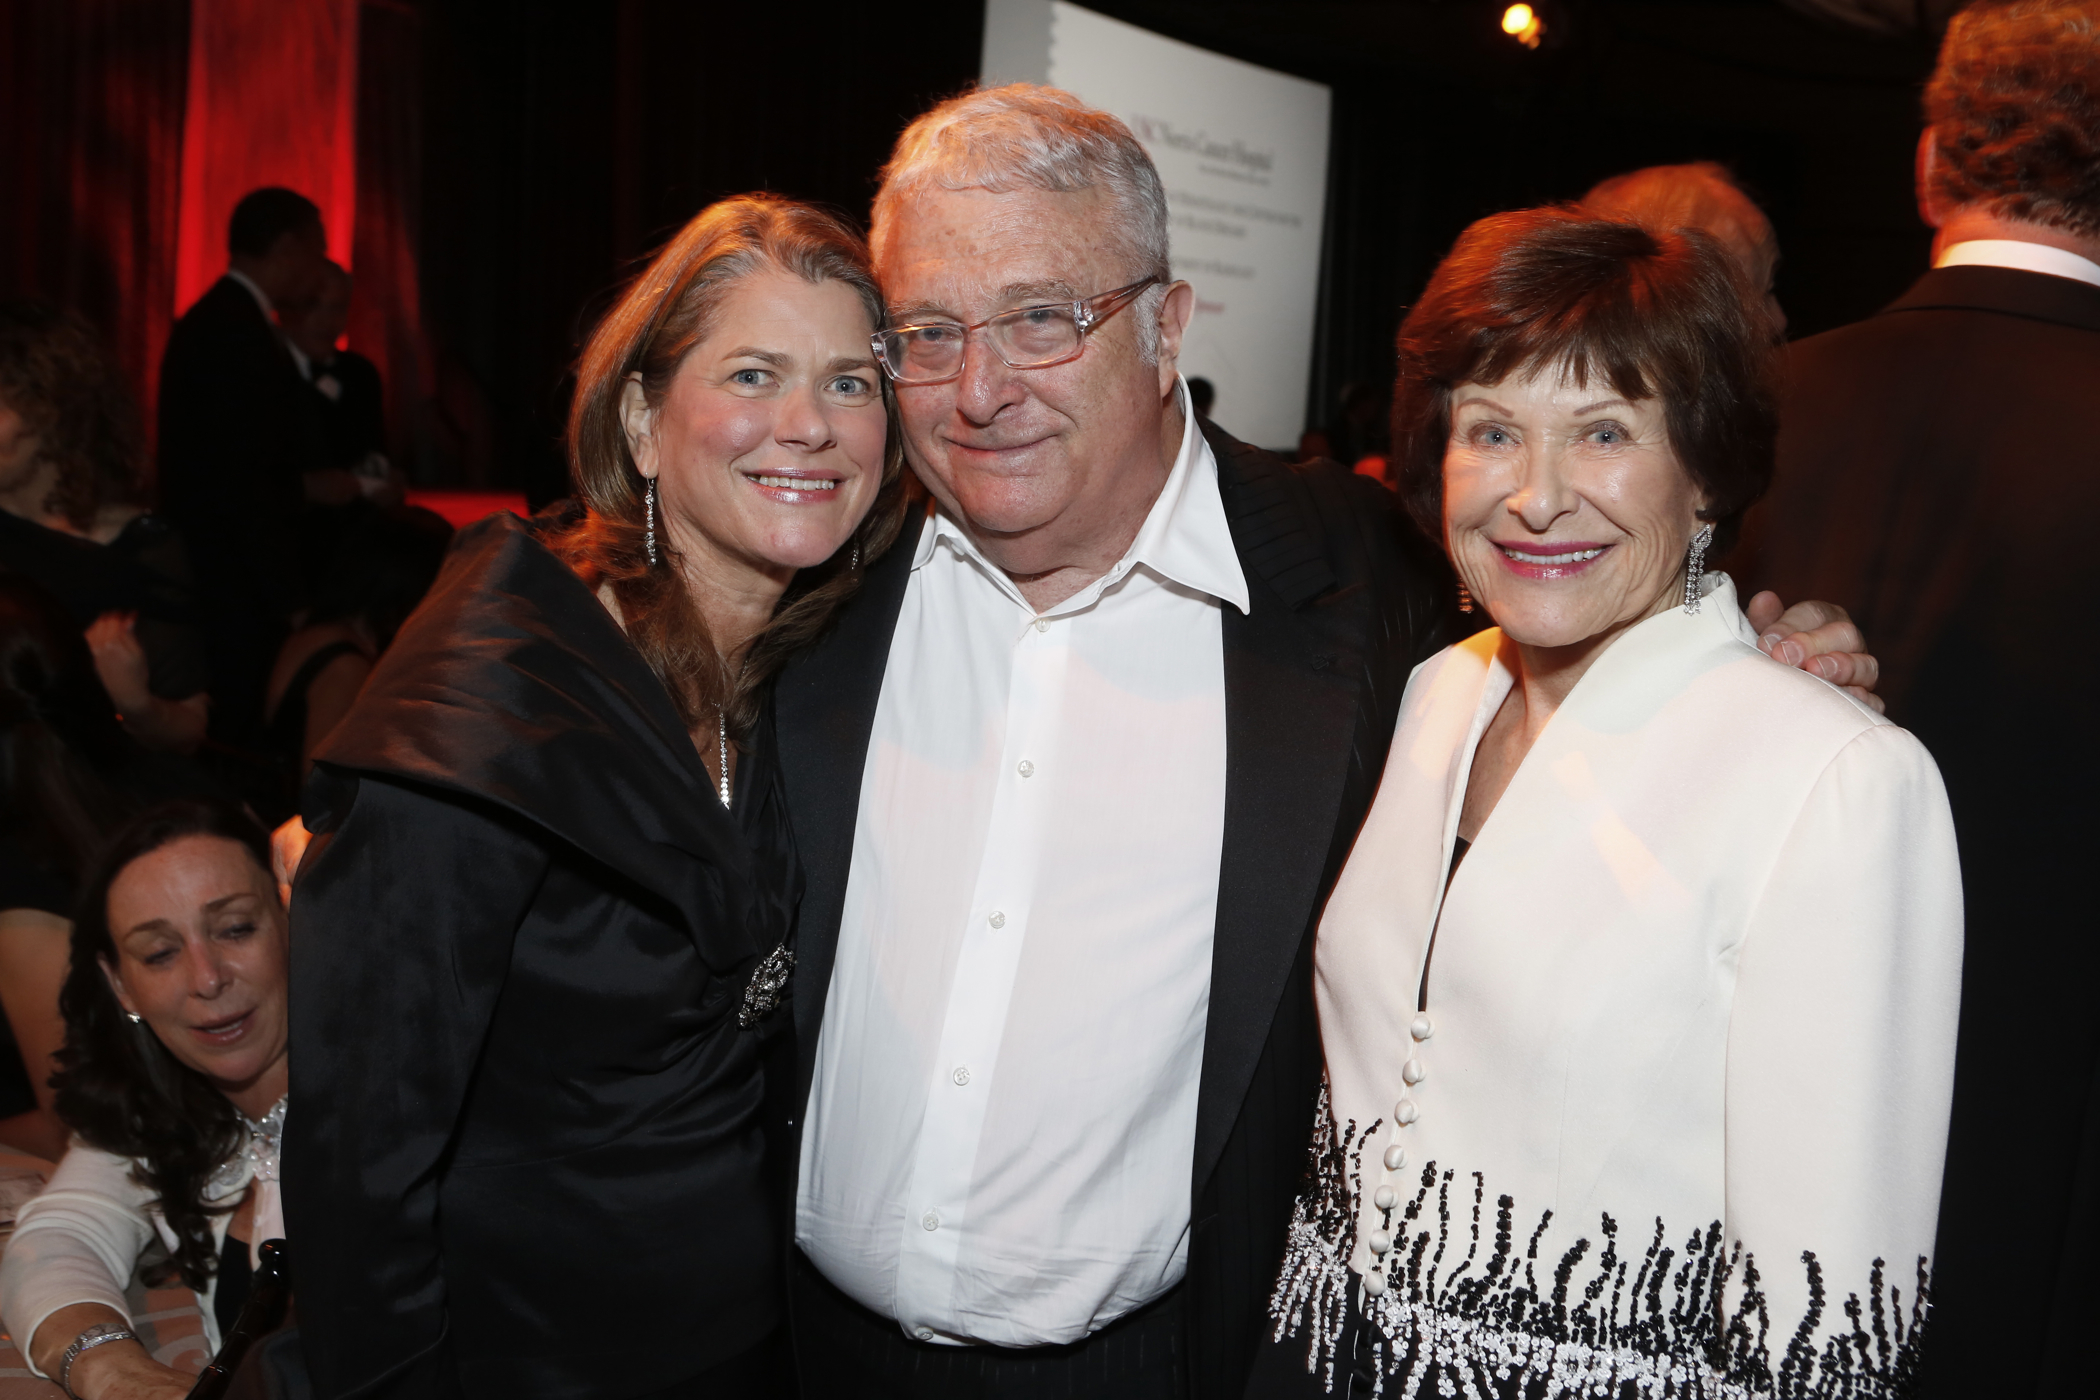 Lisa Hansen, chair of the Norris Foundation, with musician Randy Newman and USC Trustee Harlyne Norris at the 40th anniversary gala for the USC Norris Comprehensive Cancer Center (USC Photo/Steve Cohn)